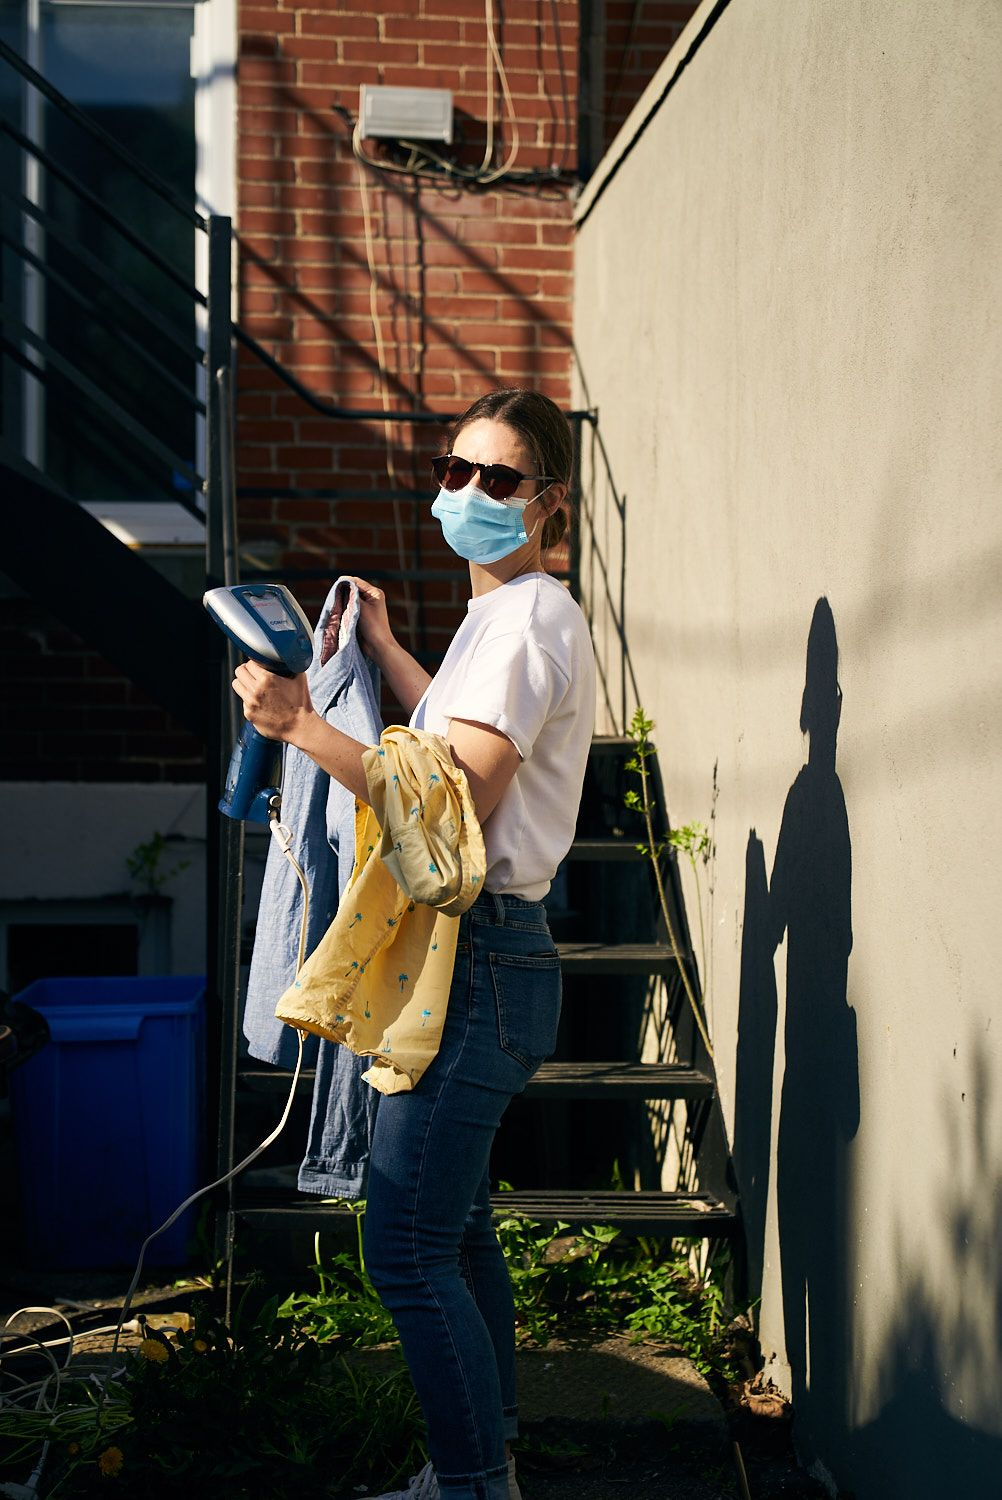 Consulat's Martine Goyette steaming clothes while wearing surgical mask for photoshoot of Bruno Florin for Belle Gueule